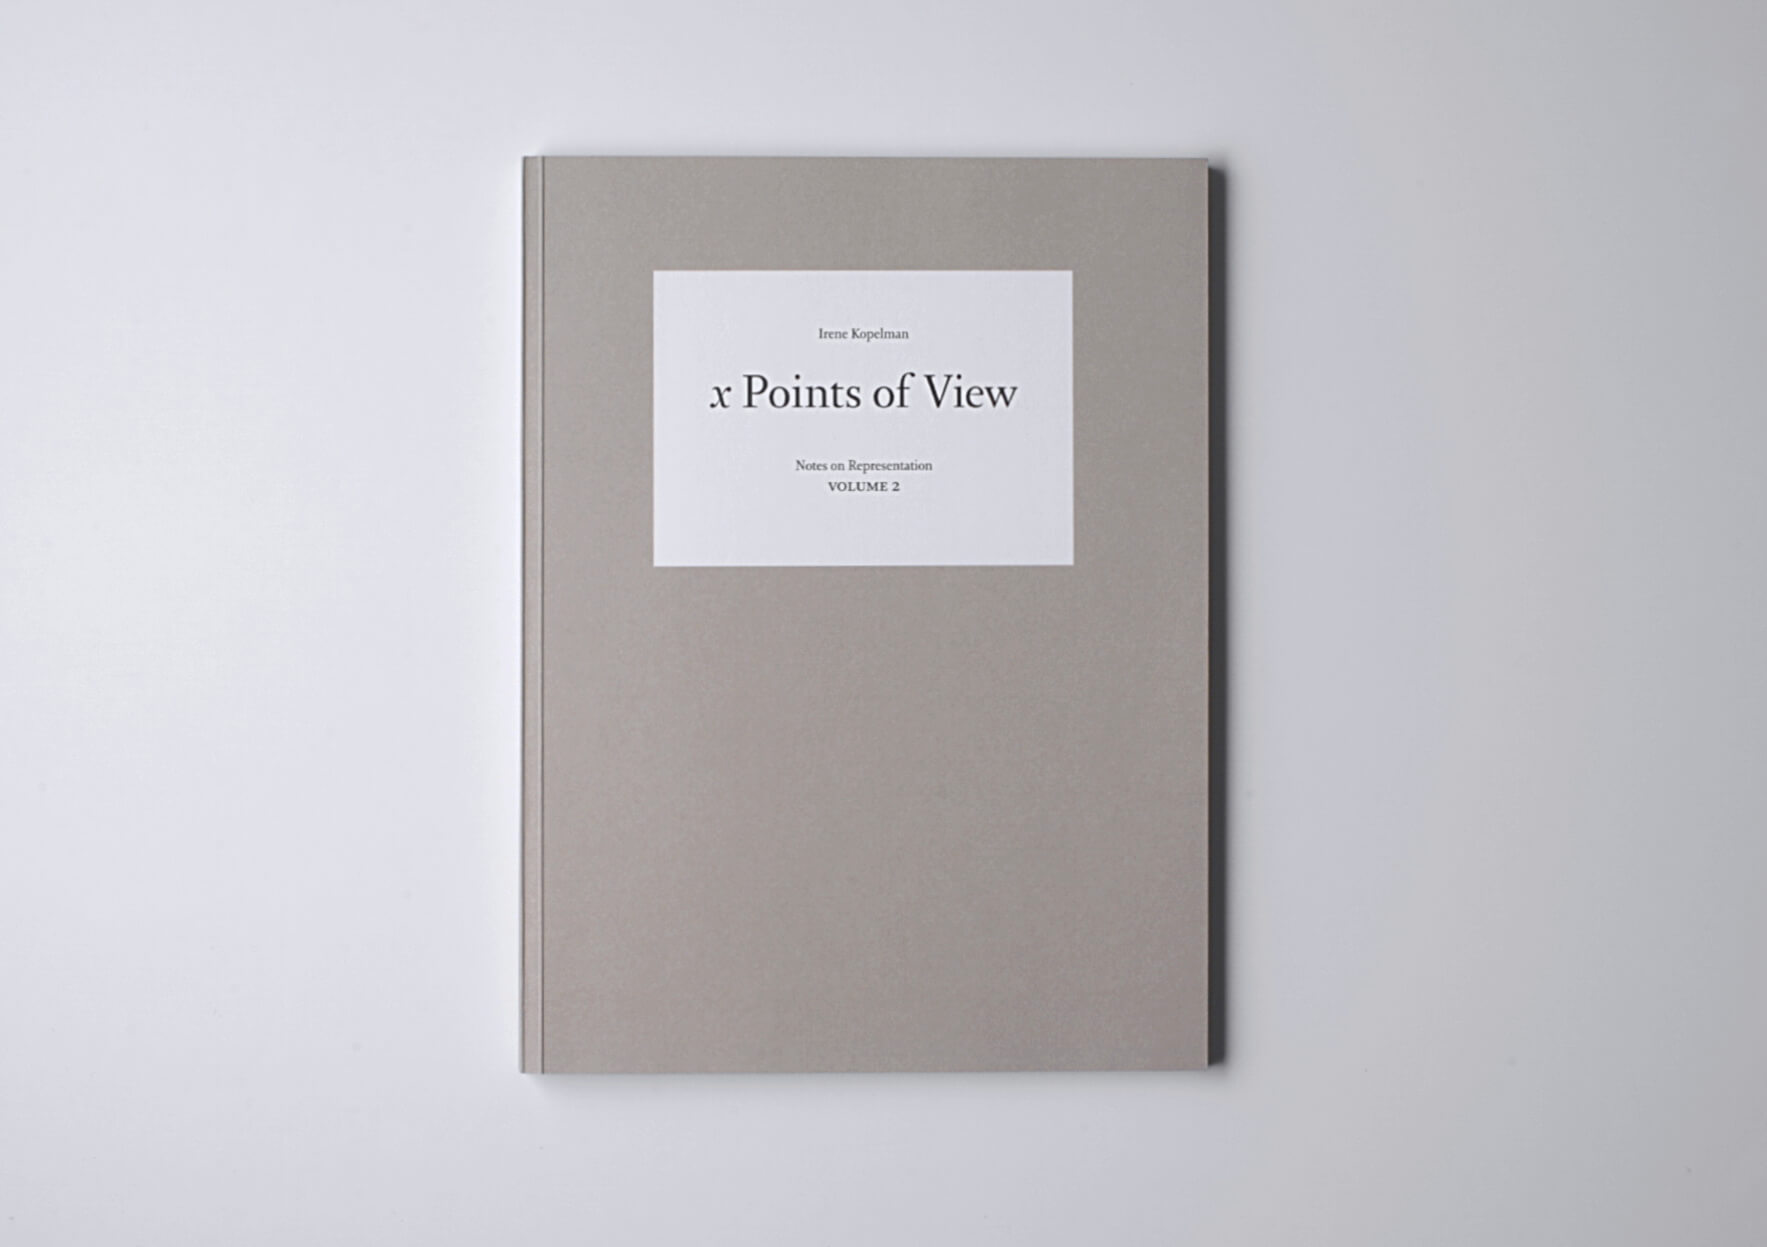 Irene Kopelman x Points of View . Notes on Representation V.2, 2011 28 x 21 cm, 144 p. Ed. Roma Publications | Mother | ProjecteSD